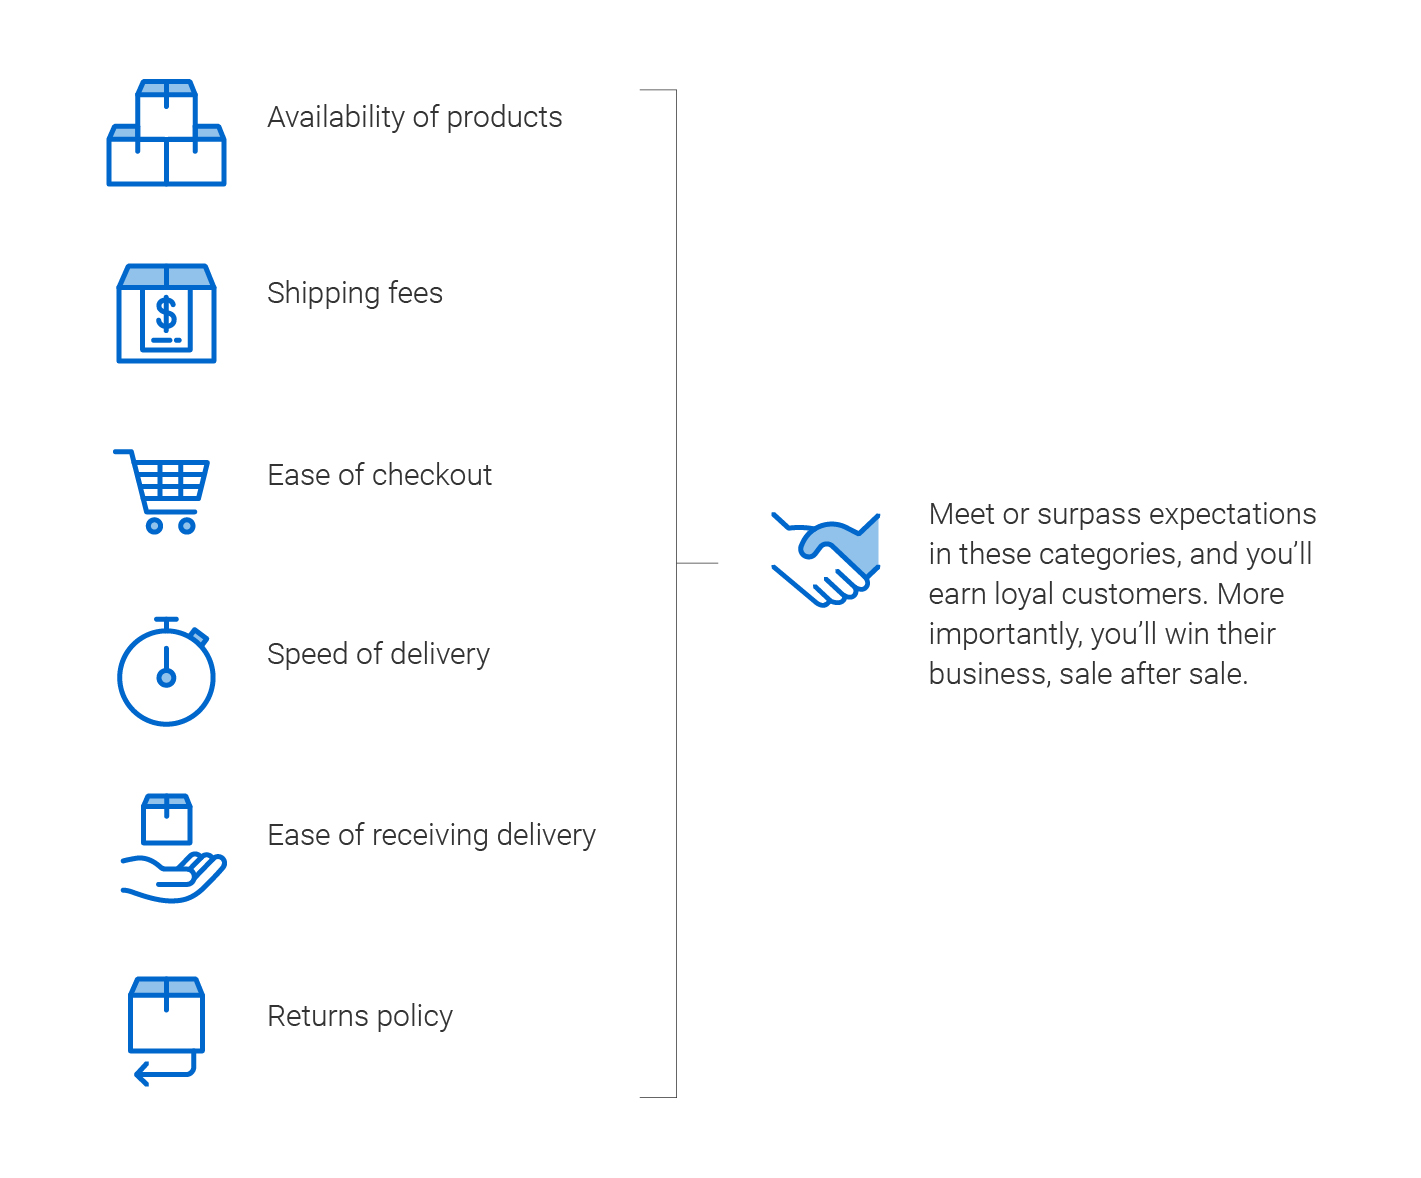 Infographic of the customers' purchasing experience: availability of products, shipping fees, ease of checkout, speed of delivery, ease of receiving delivery and returns policy. Meet or surpass expectations in these categories, and you'll earn loyal customers. More importantly, you'll win their business, sale after sale.